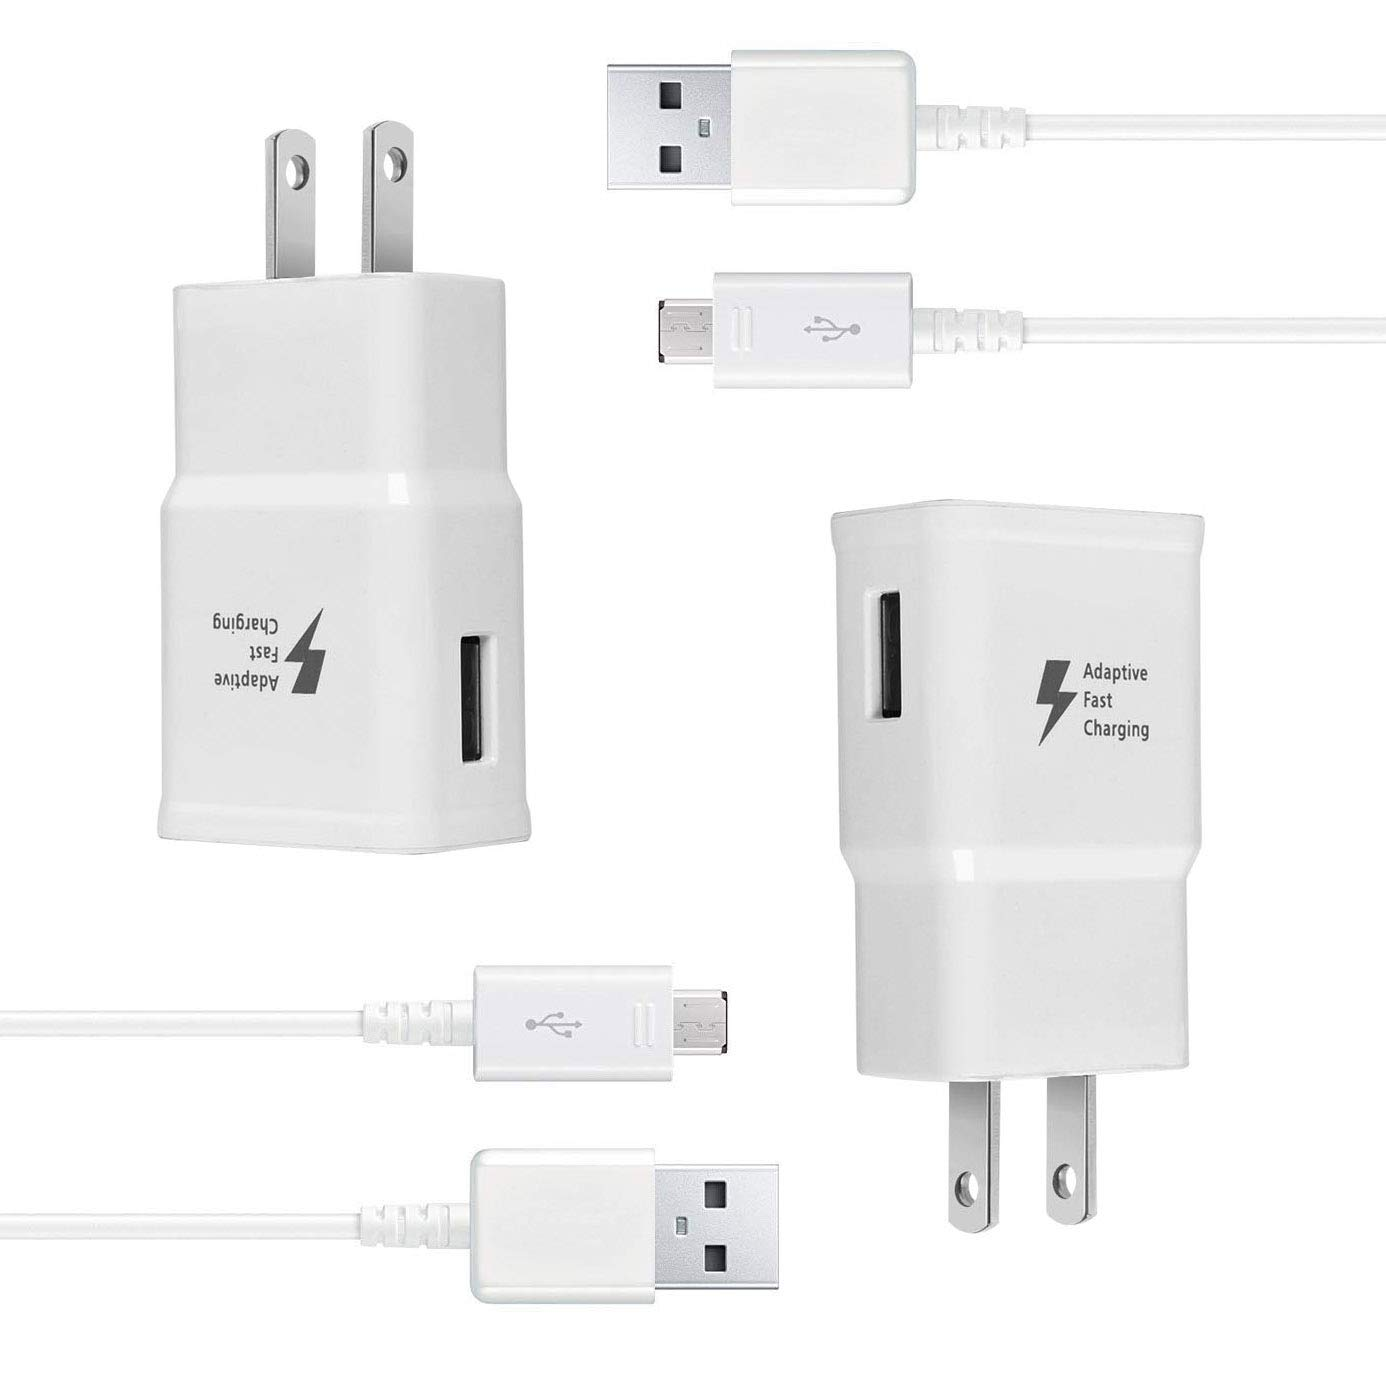 Wall Charger Kit Adaptive Fast Charge Compatible Samsung Galaxy S7 / S7 Edge / S6 / S6 Plus / Note5/4 /S4/S3, USB 2.0 Fast Wall Charger Adapter and Micro USB Cable (2 Adapter + 2 Cable) by Eaxxfly